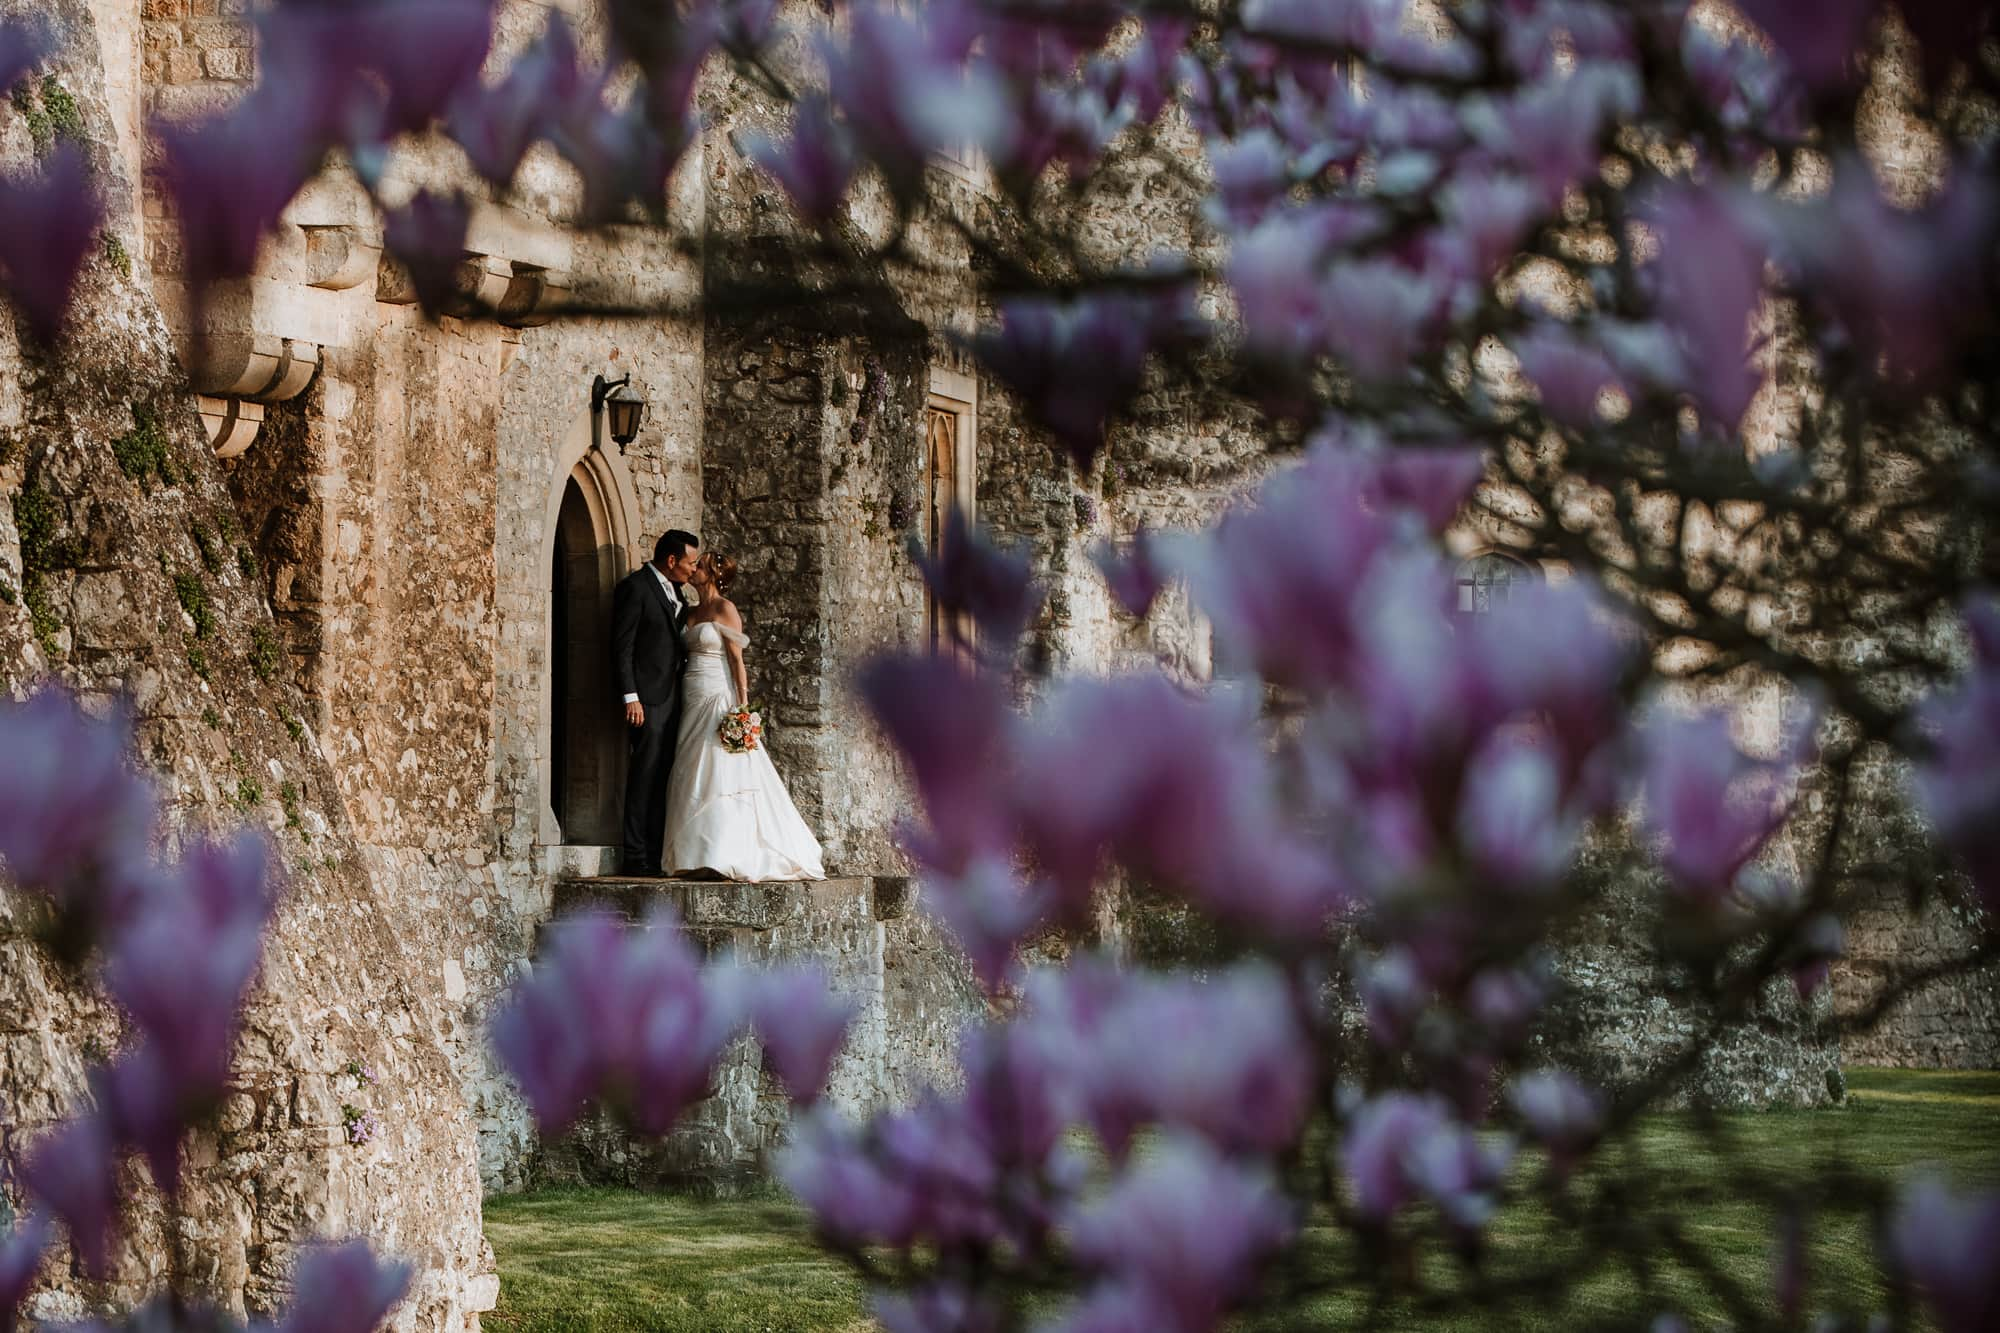 Bride and Groom kissing during their portraits in the grounds of Allington Castle